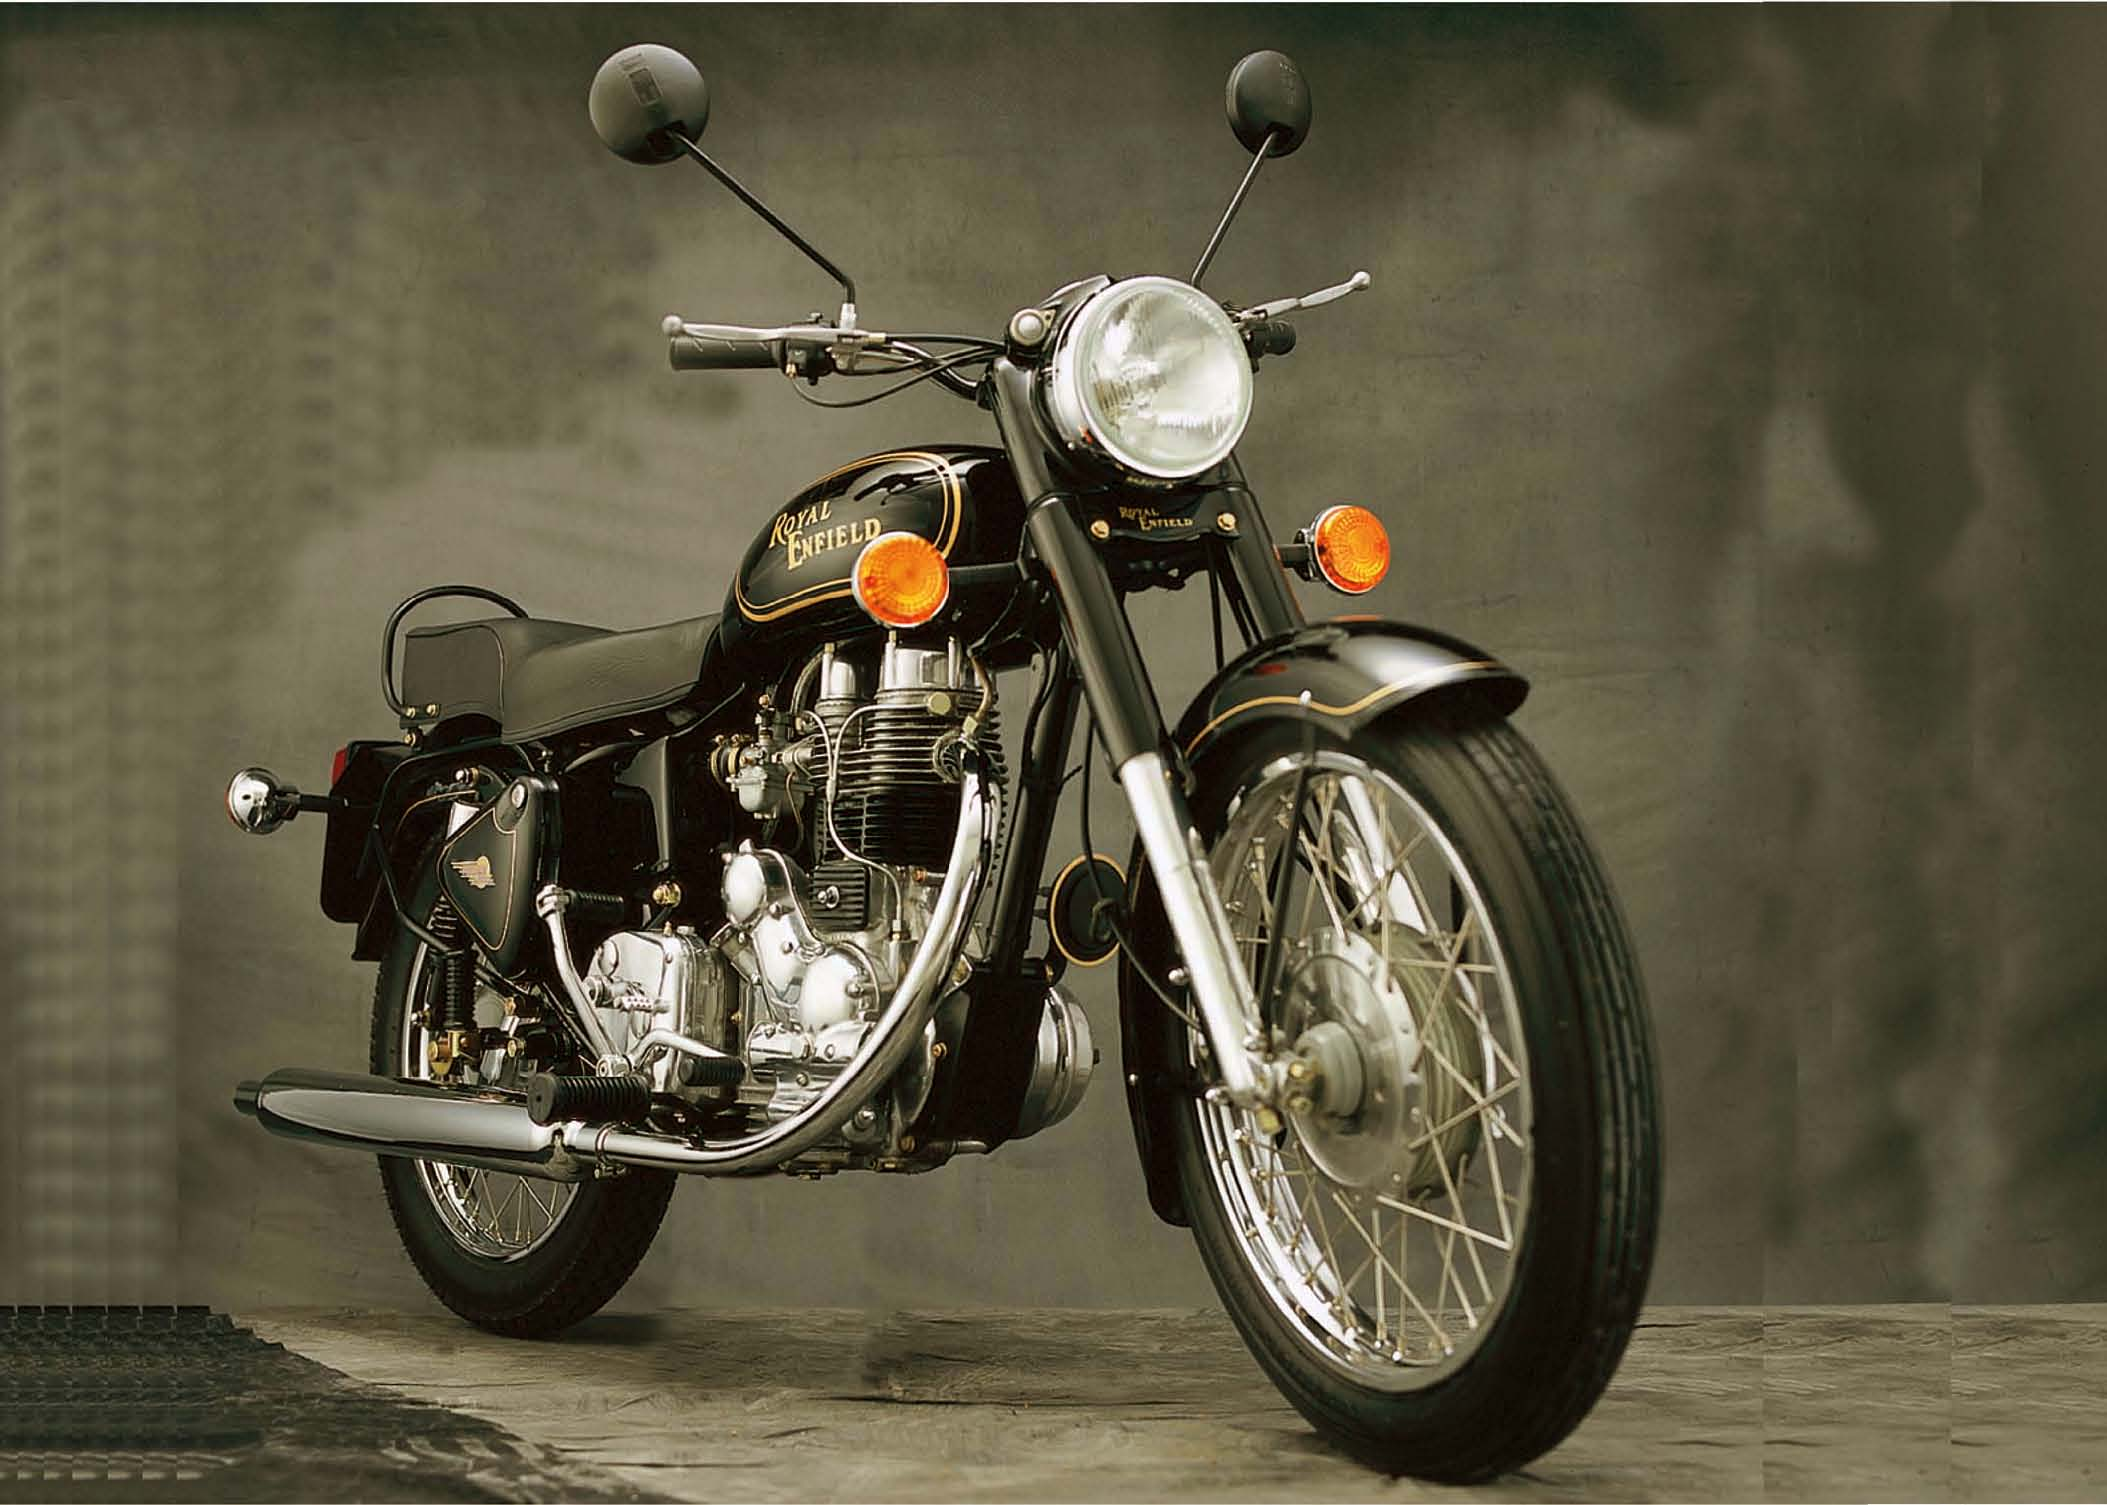 Royal Enfield Bullet 350 Classic 2007 images #123970